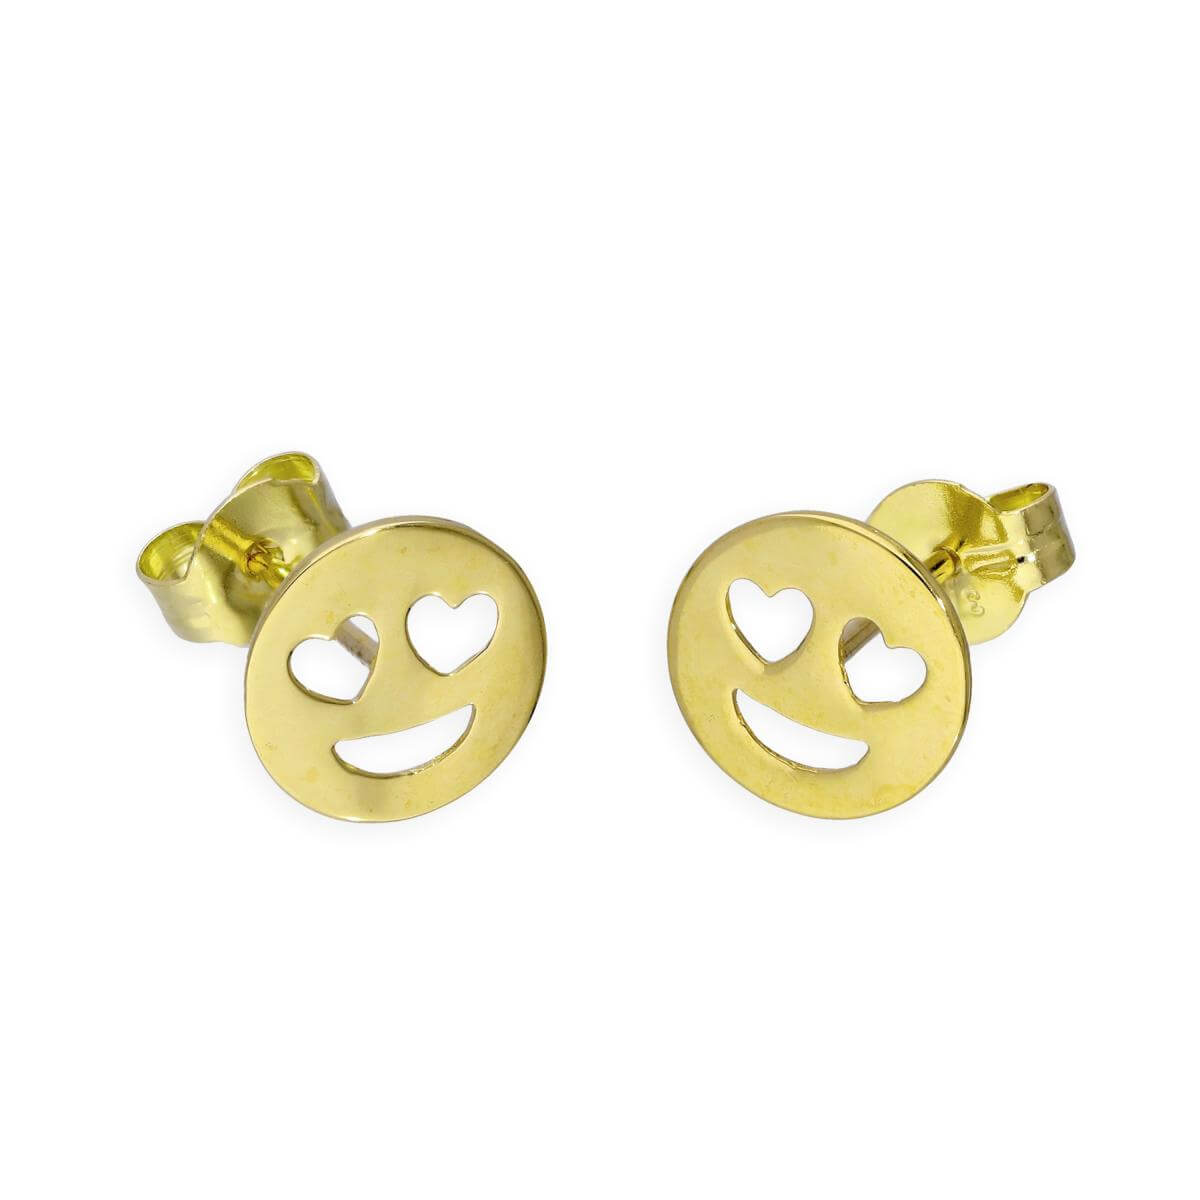 9ct Gold Heart Eyes Emoji Stud Earrings